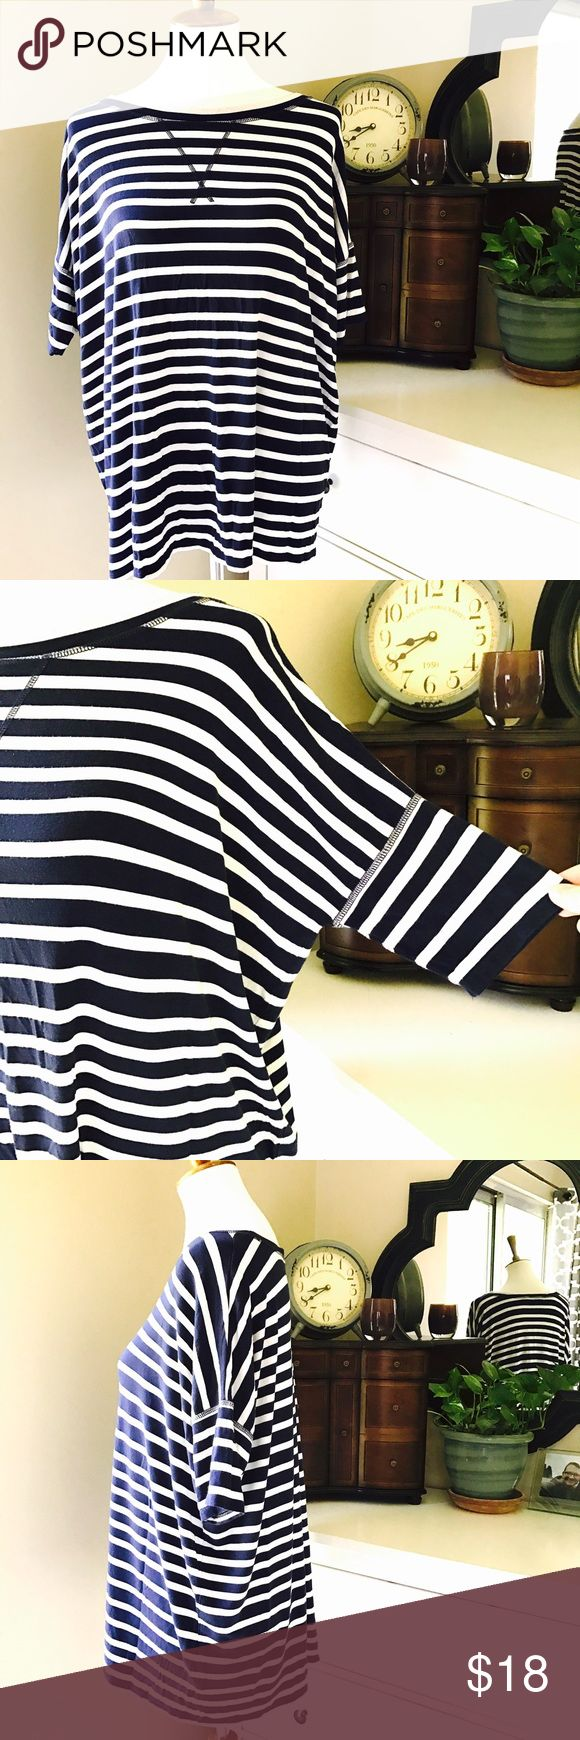 """CAbi Style #769 Nautical Tee Stripes Brand: CAbi Details: White and navy striped loose shirt, short sleeve. Blouse Top shirt  Size: Small Measures approx 26"""" from underarm to underarm and has a 24""""hem  Gently pre-owned and ready to wear.  Thanks for looking! CAbi Tops Tees - Short Sleeve"""